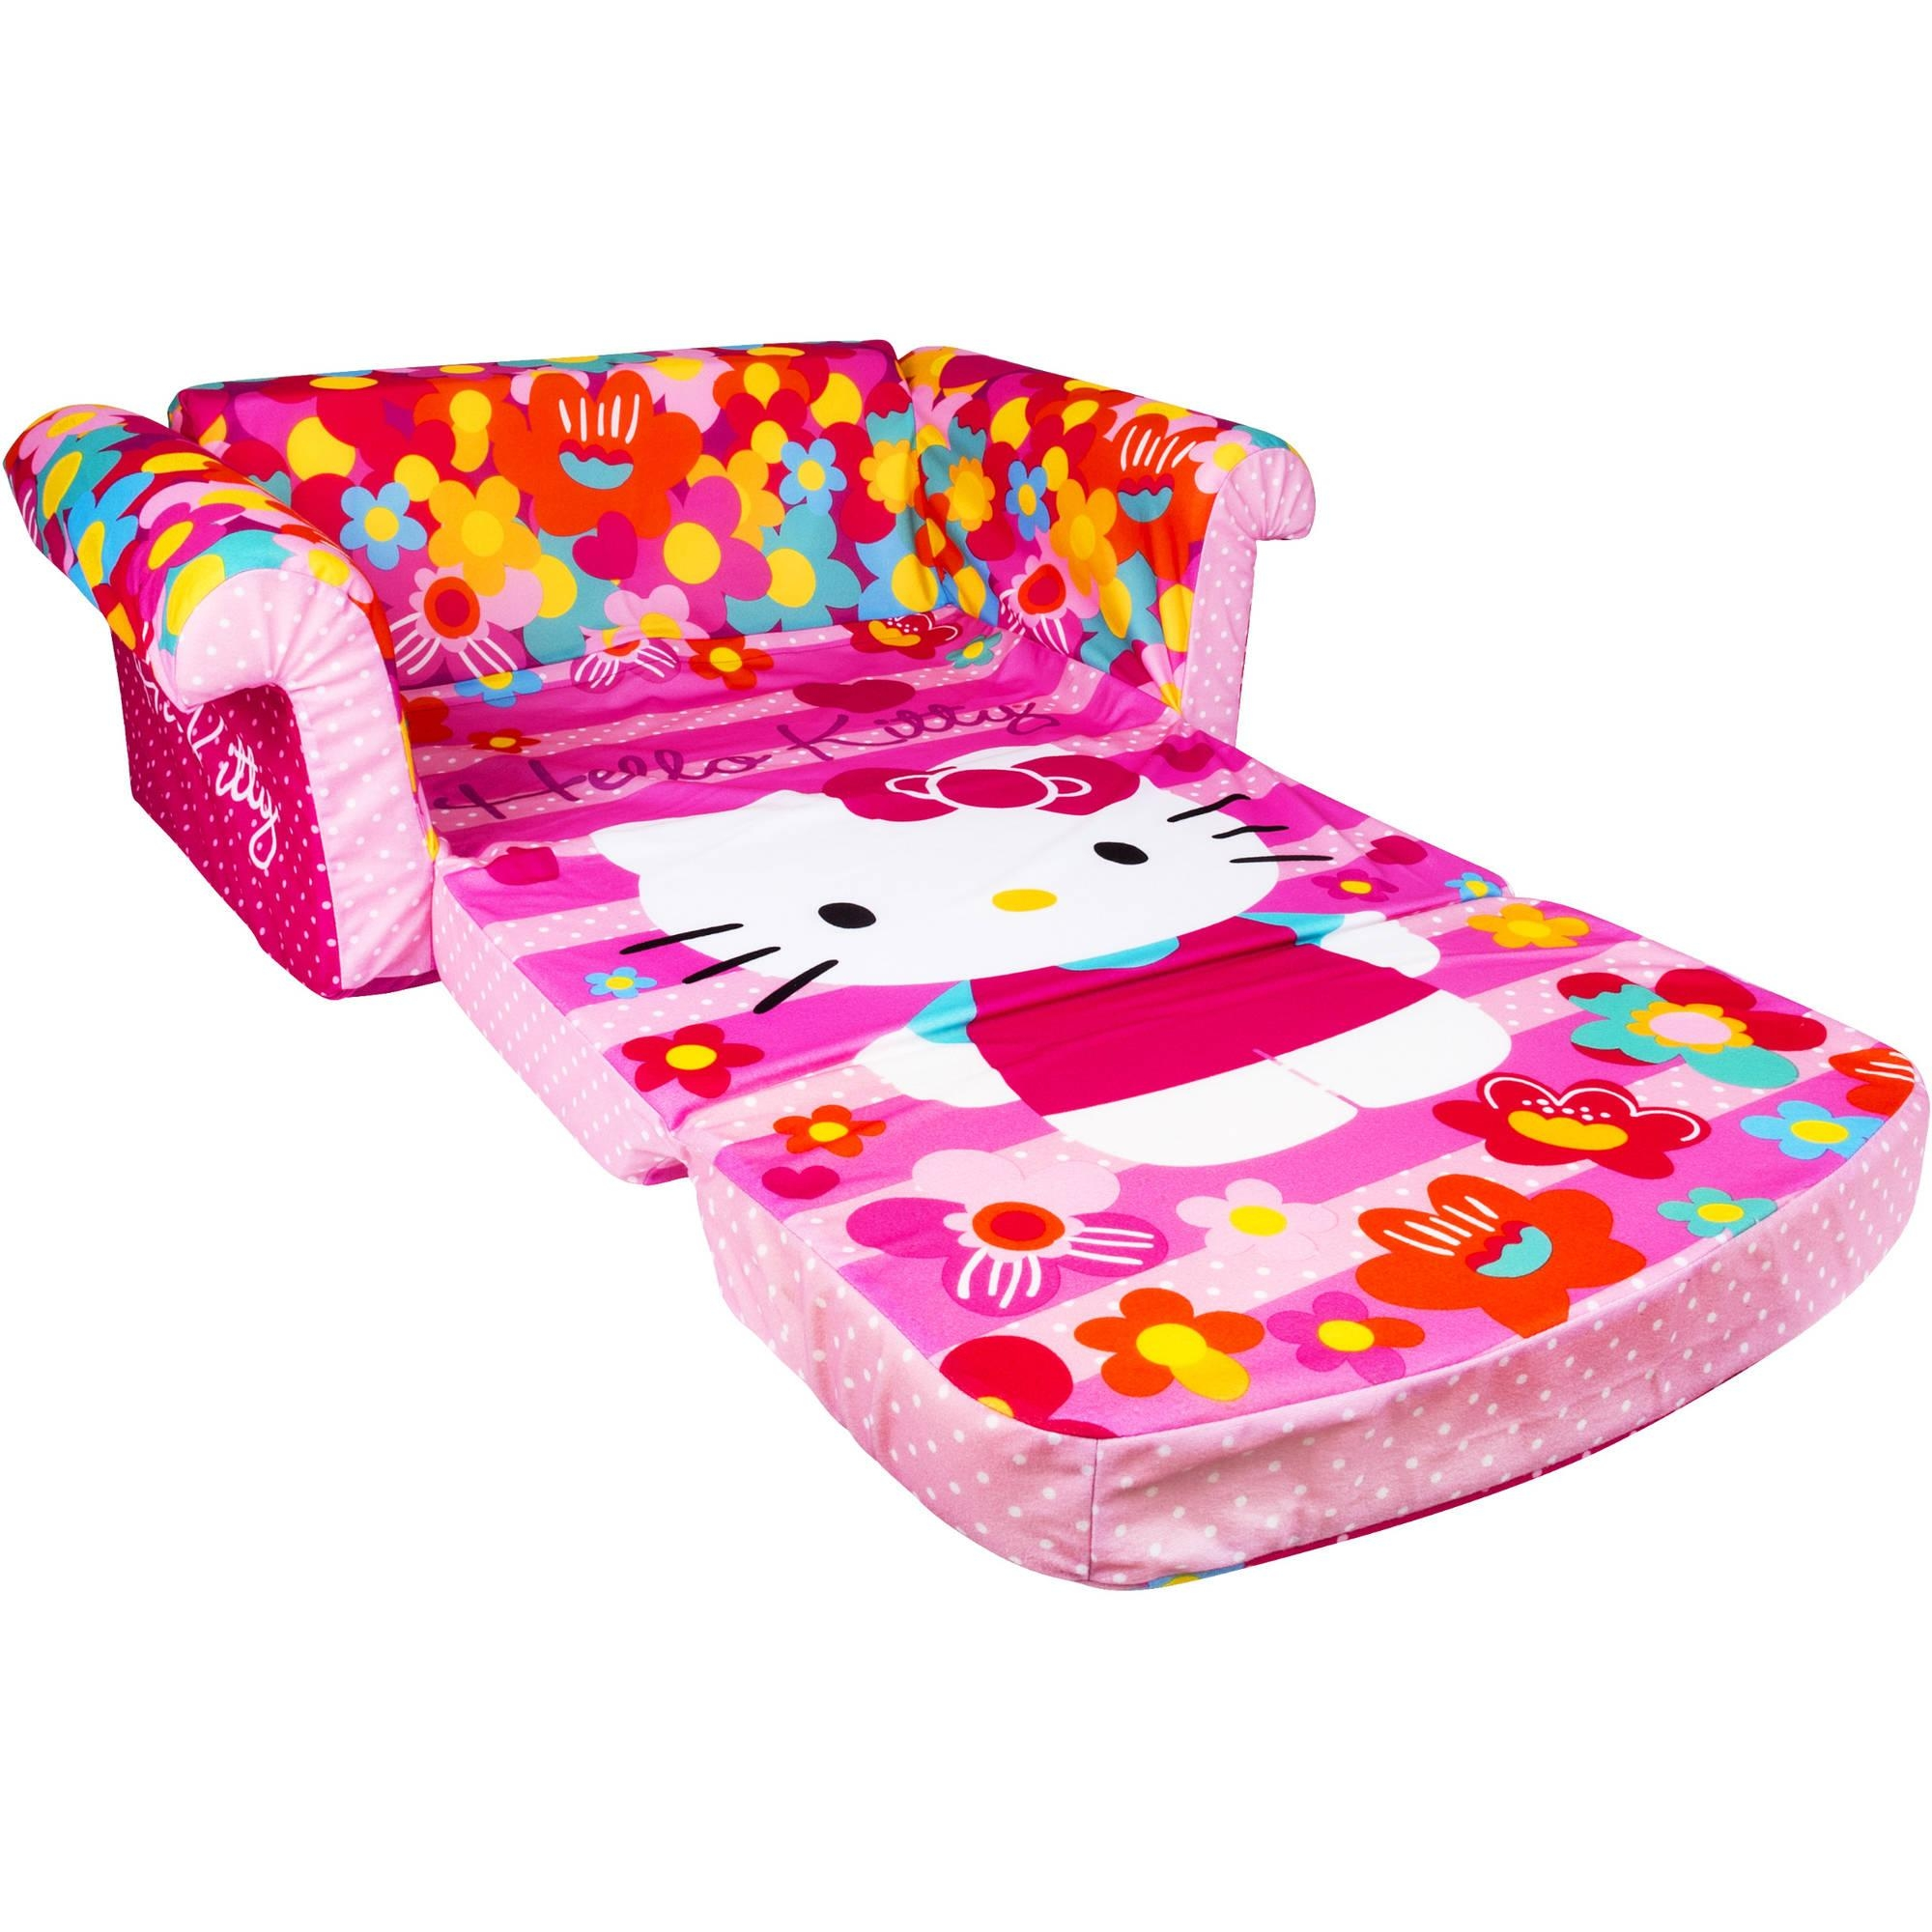 Marshmallow Furniture Flip Open Sofa, Hello Kitty – Walmart Throughout Flip Open Sofas For Toddlers (Image 9 of 20)